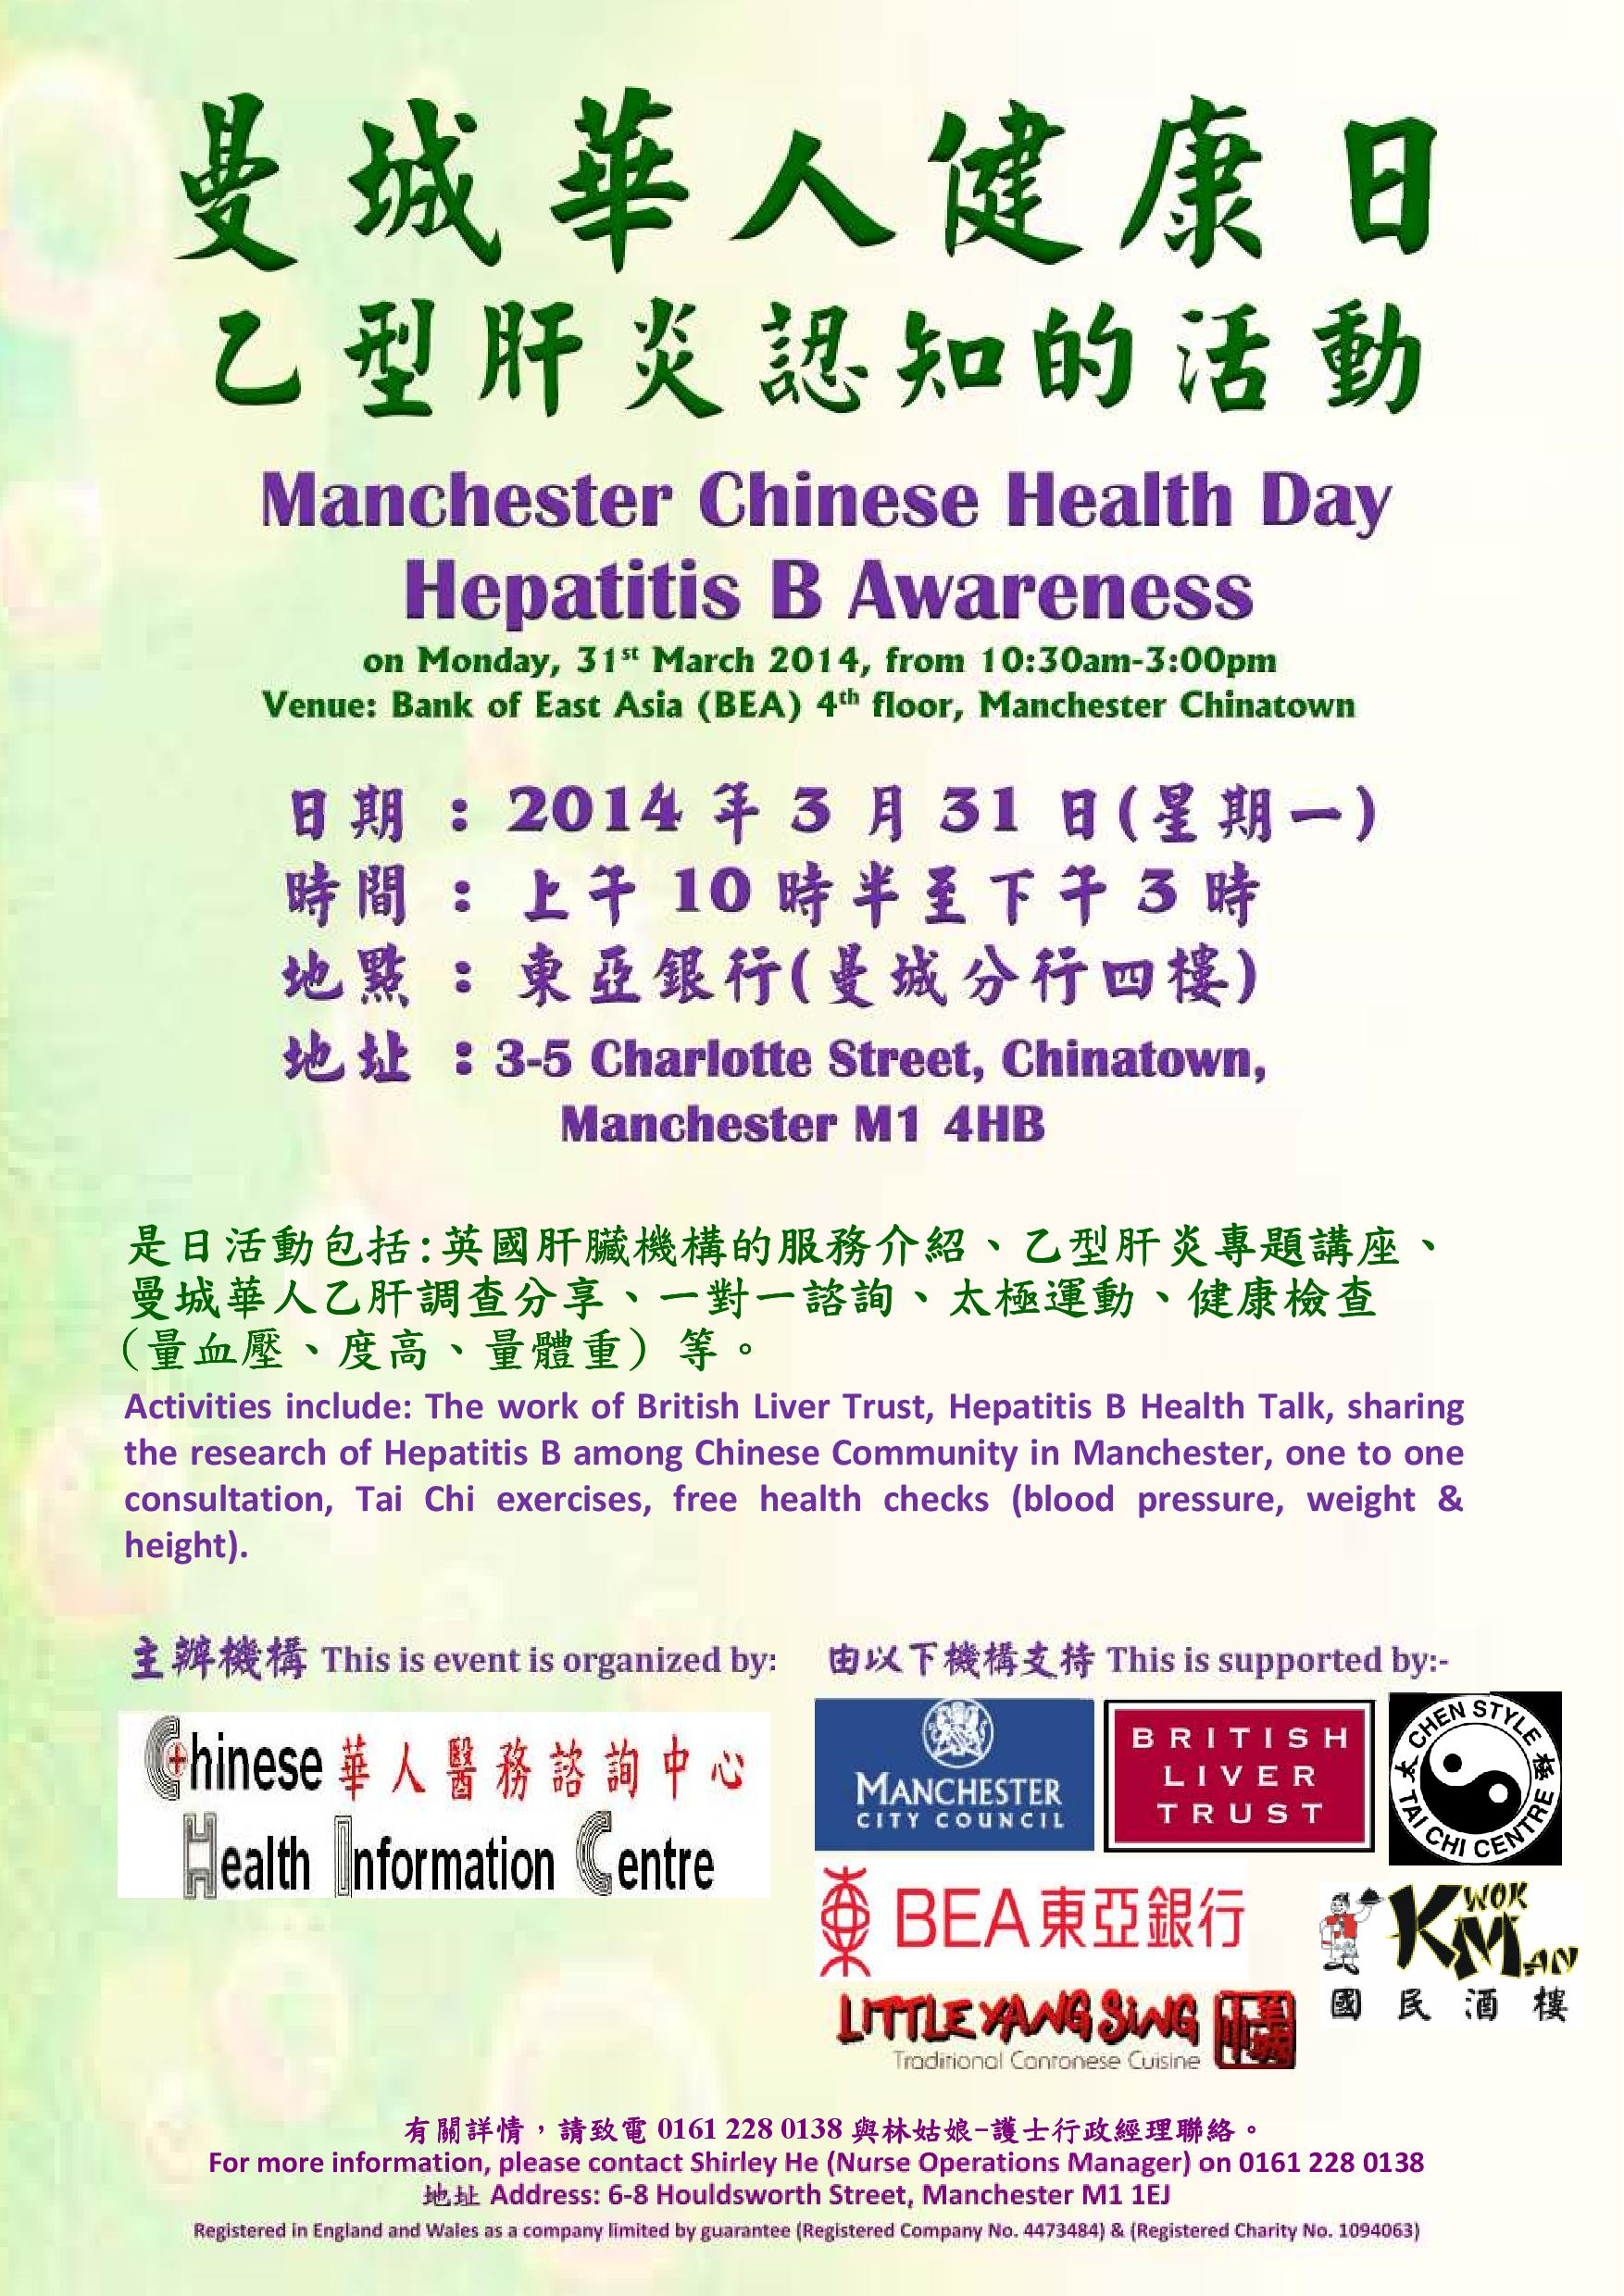 Hepatitis B Awareness Health Day